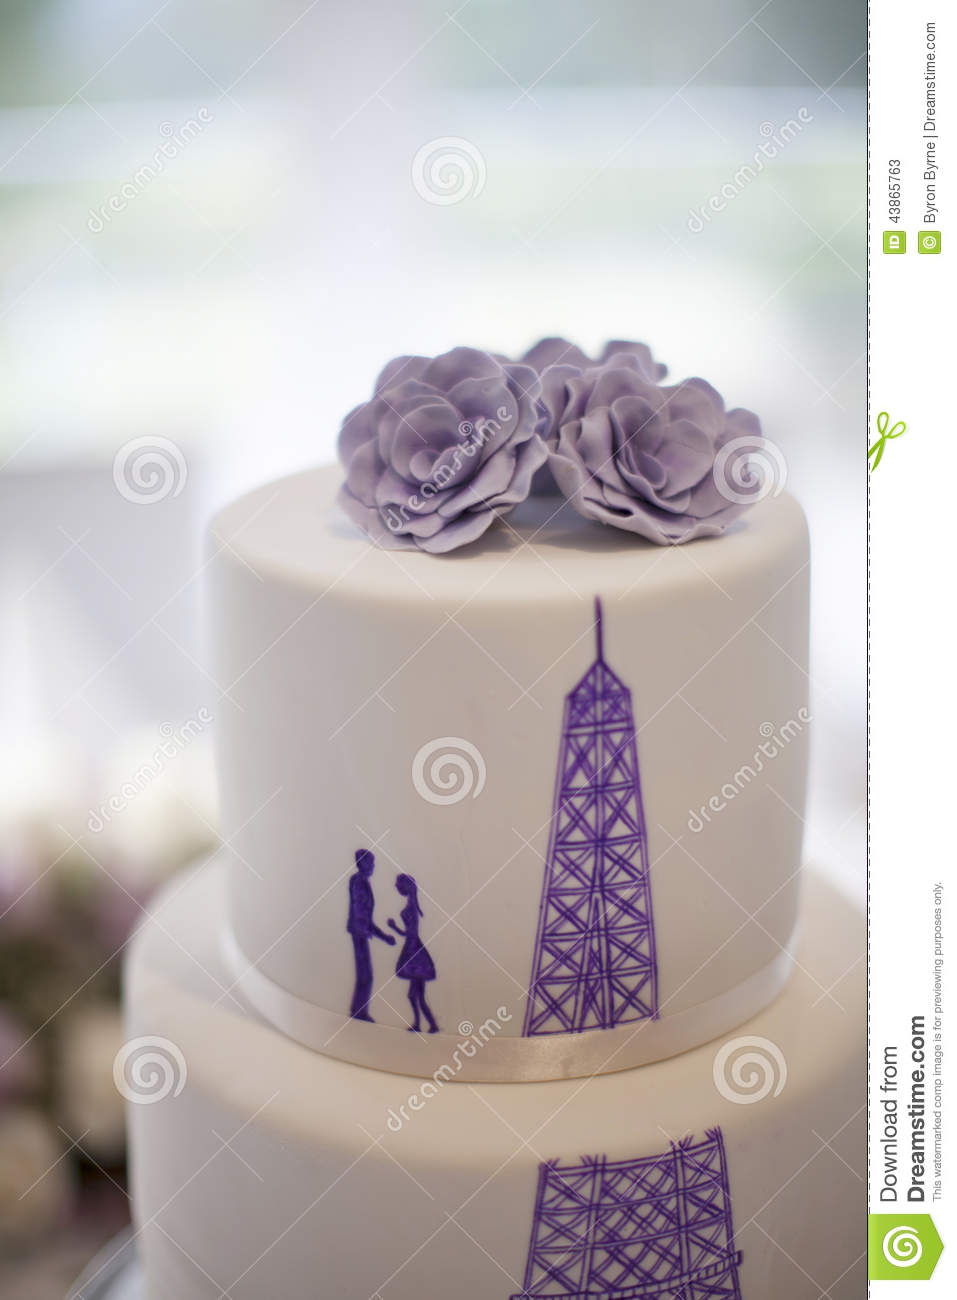 Wedding Cake Close Up With Silhouette Of A Couple And The